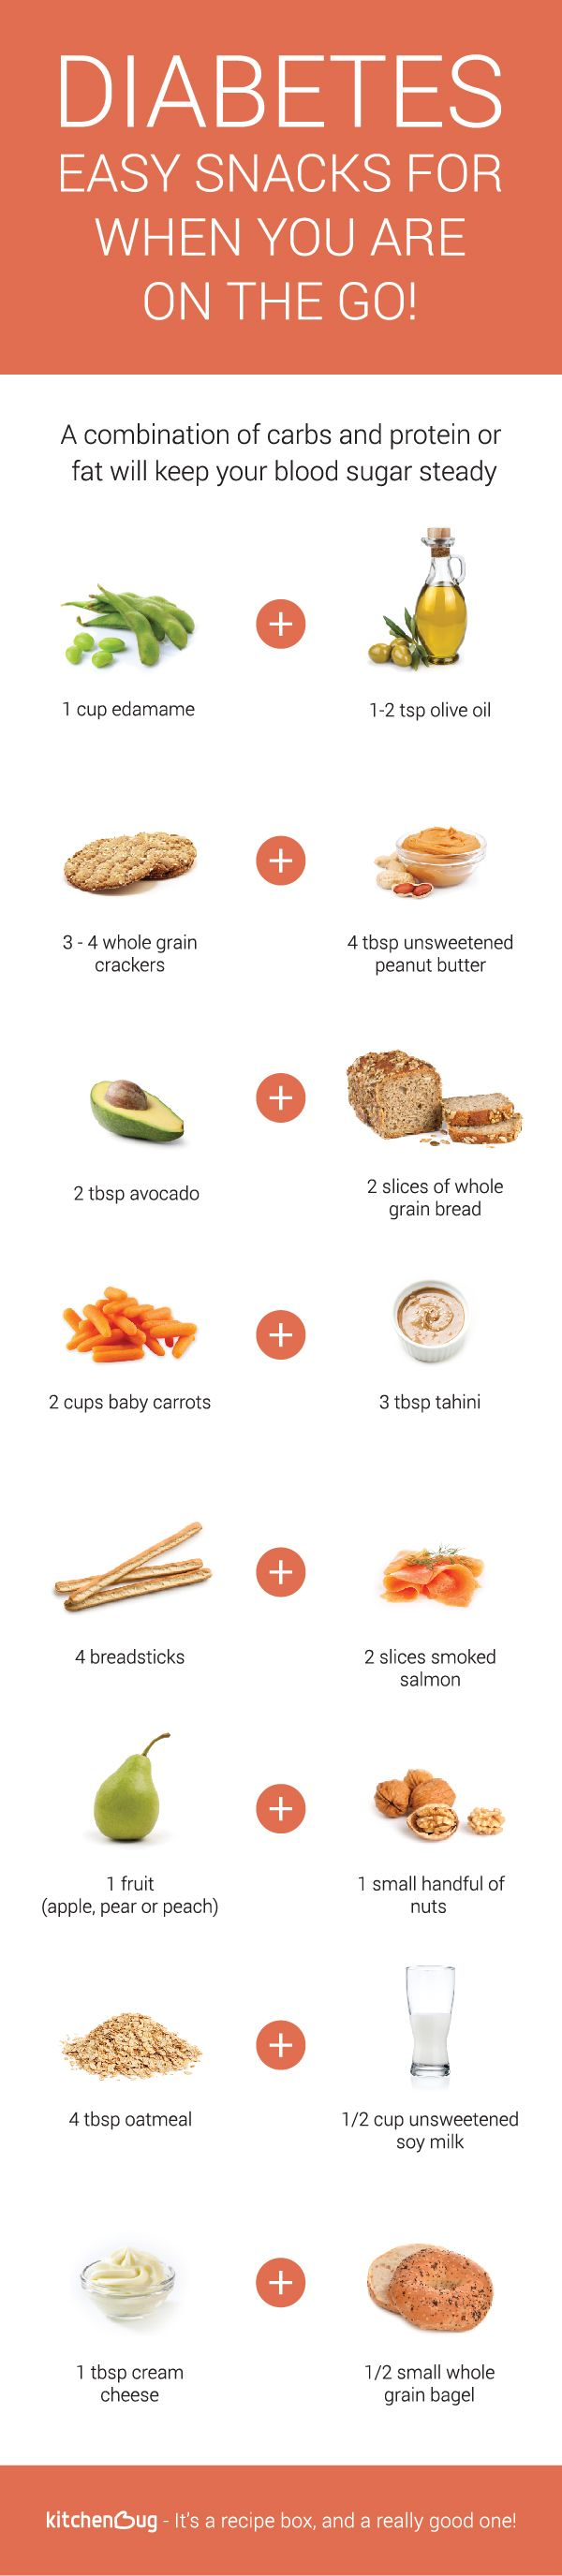 Simple snacks for Diabetics! Easy combinations that are healthy and delicious.